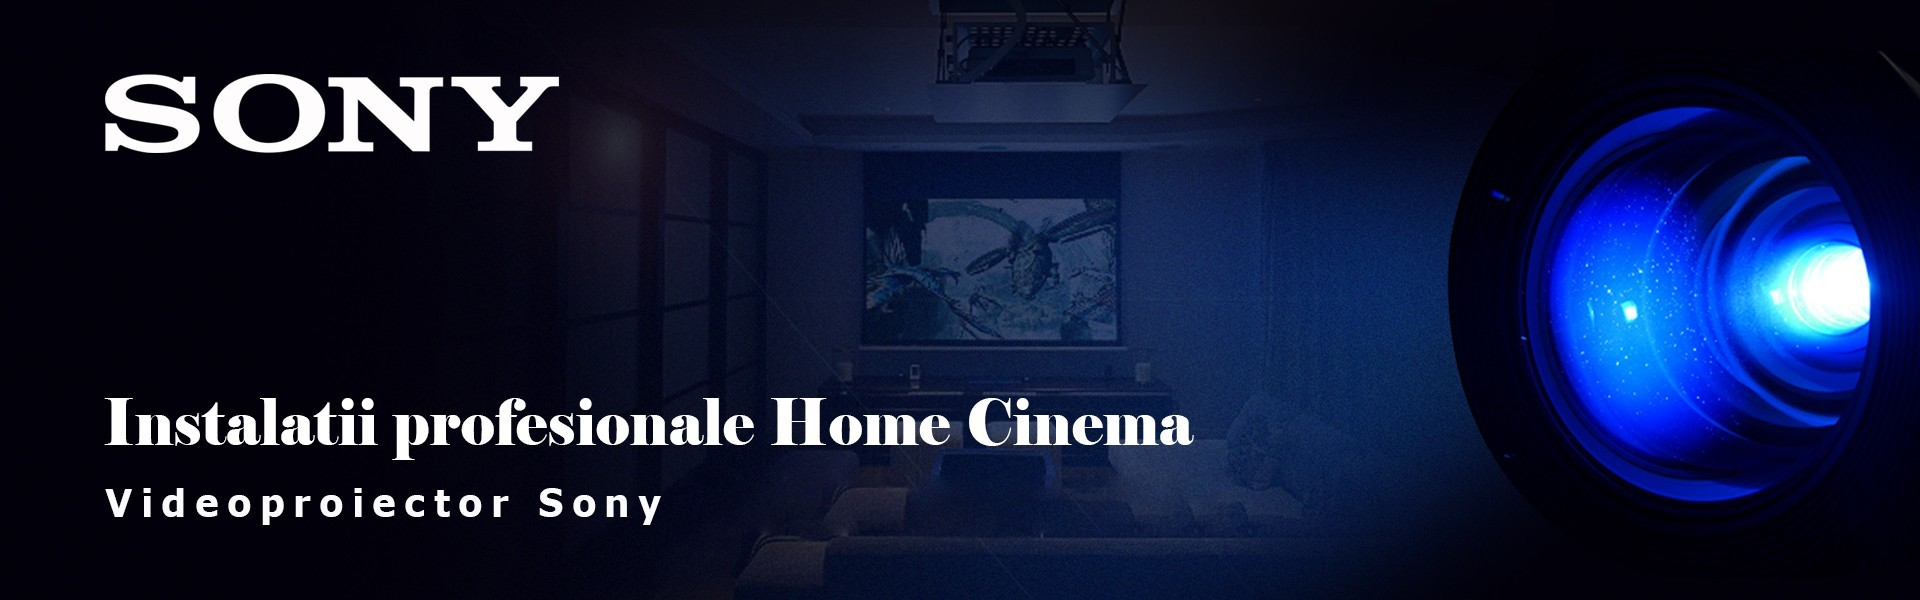 instalatii_profesionale_home_cinema_videoproiector_sony_proiector24_gbc